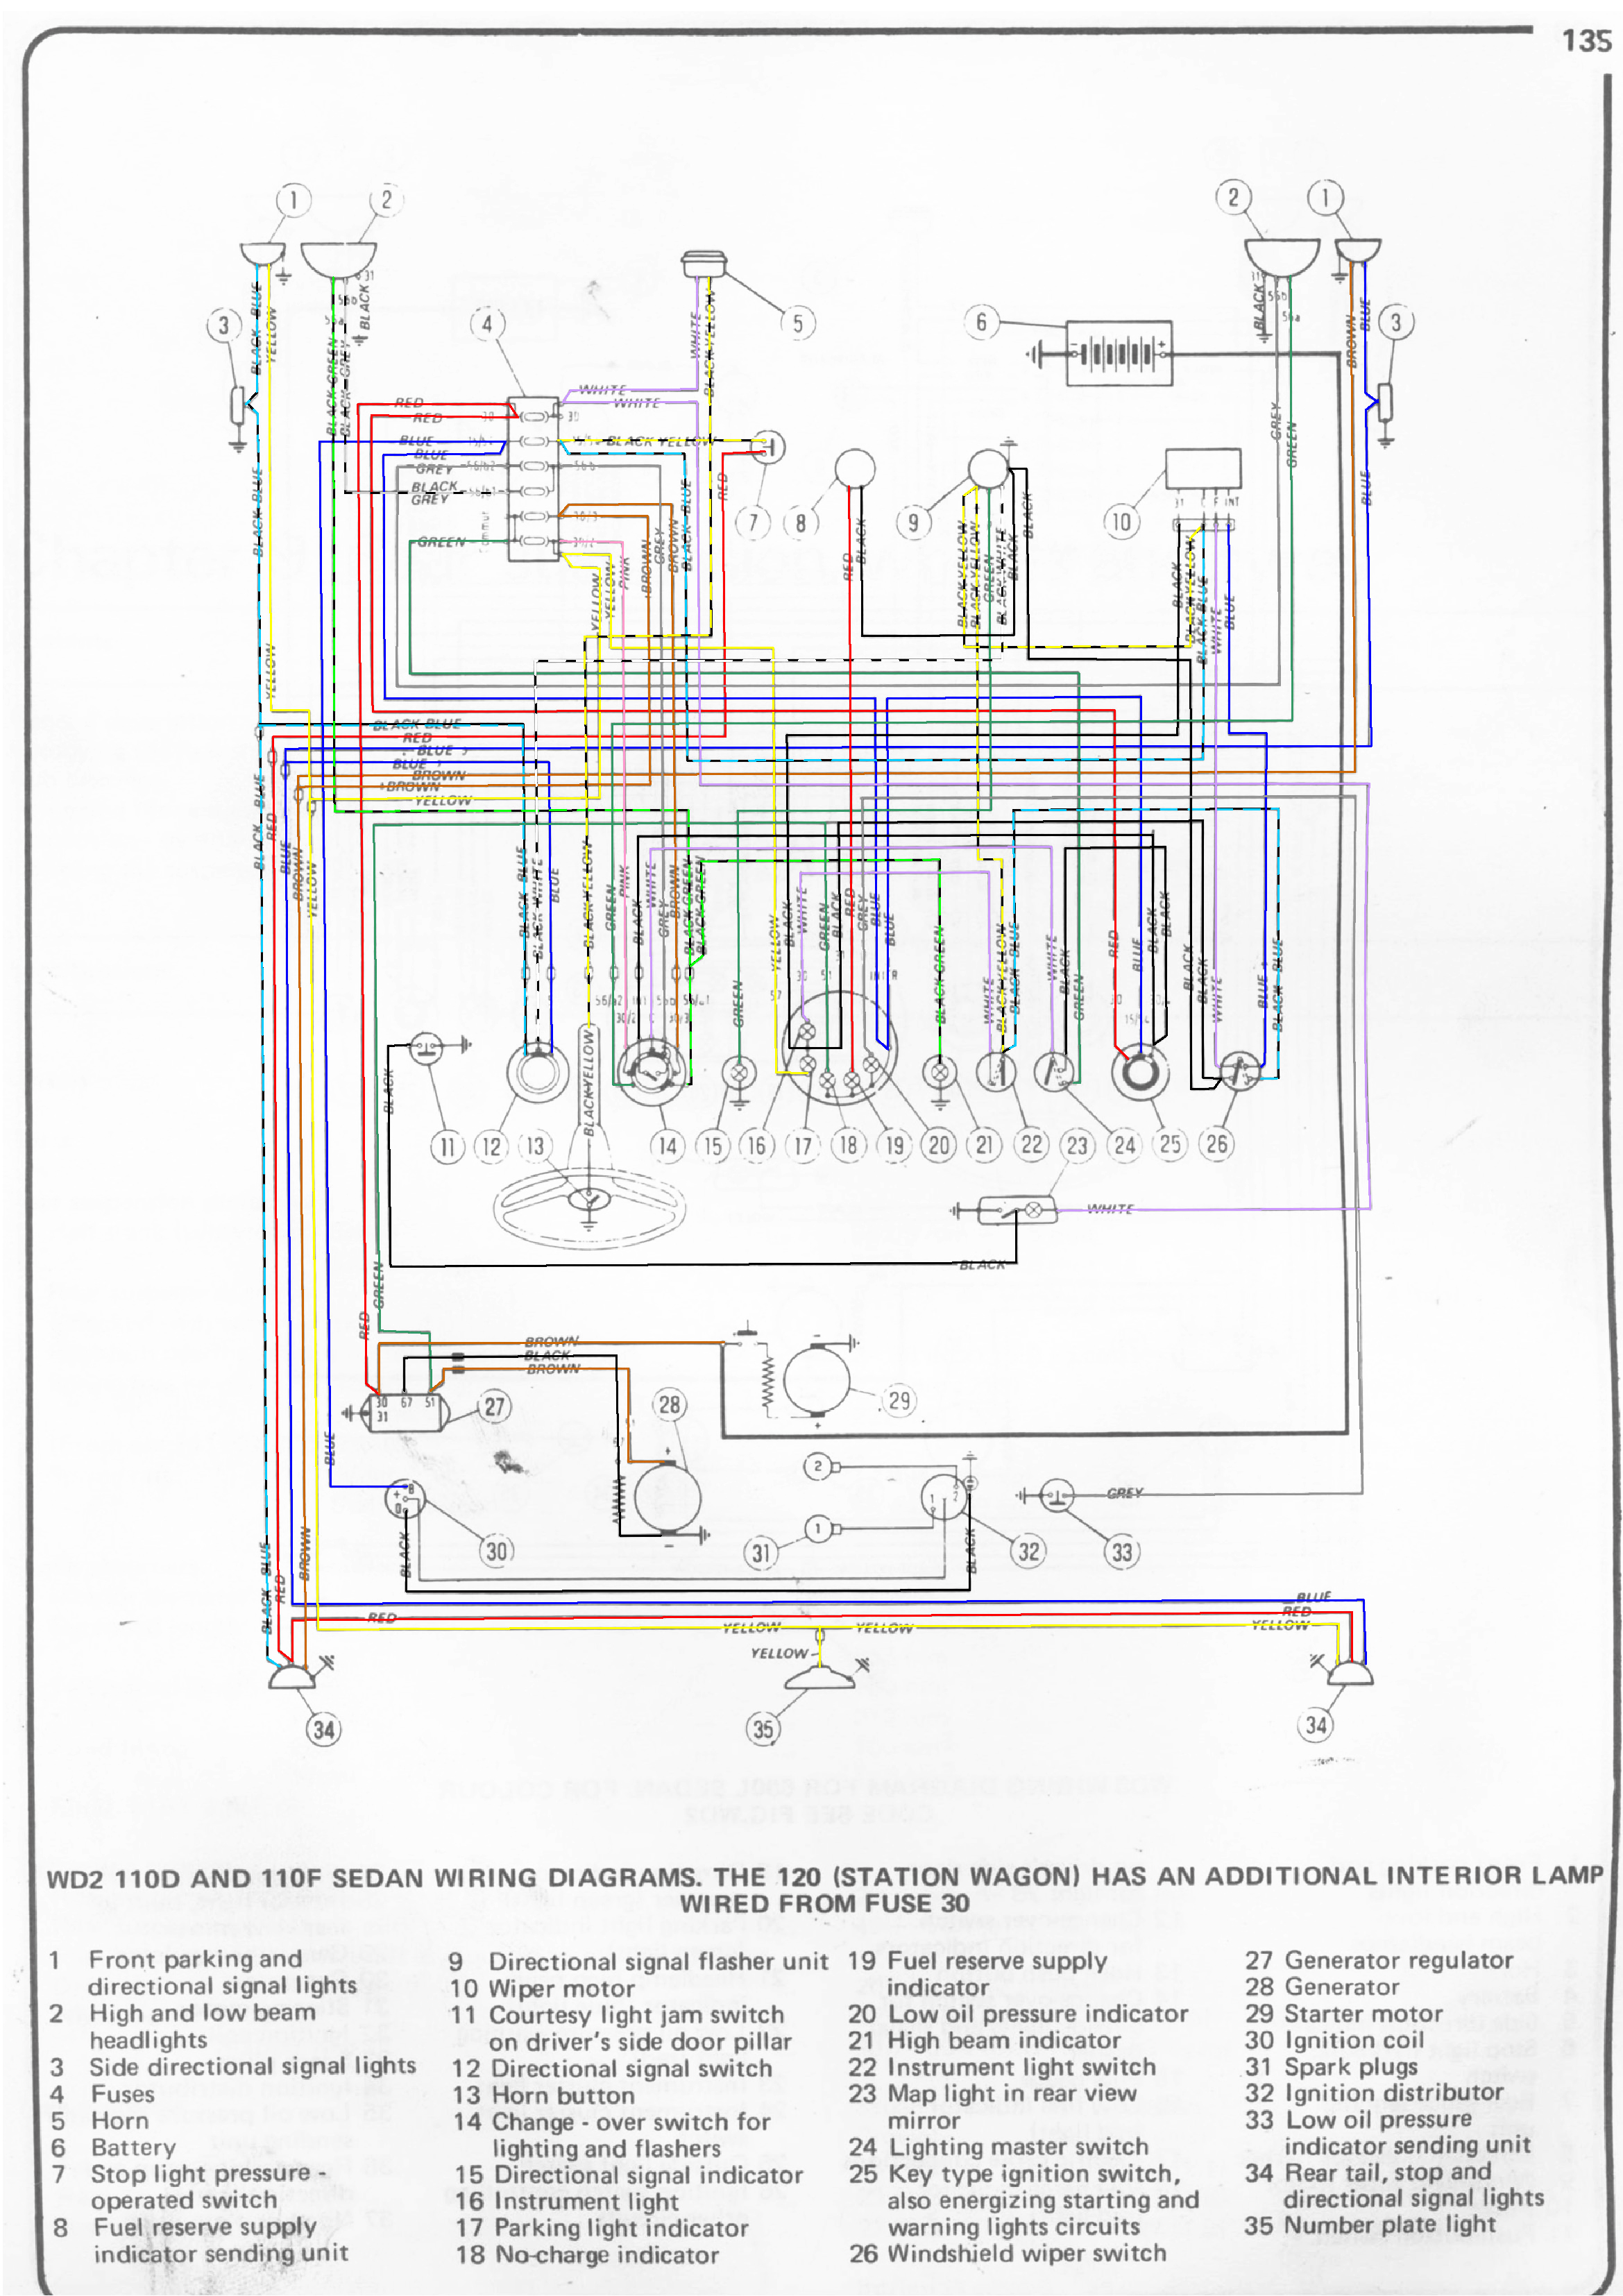 wiring diagram for fiat scudo